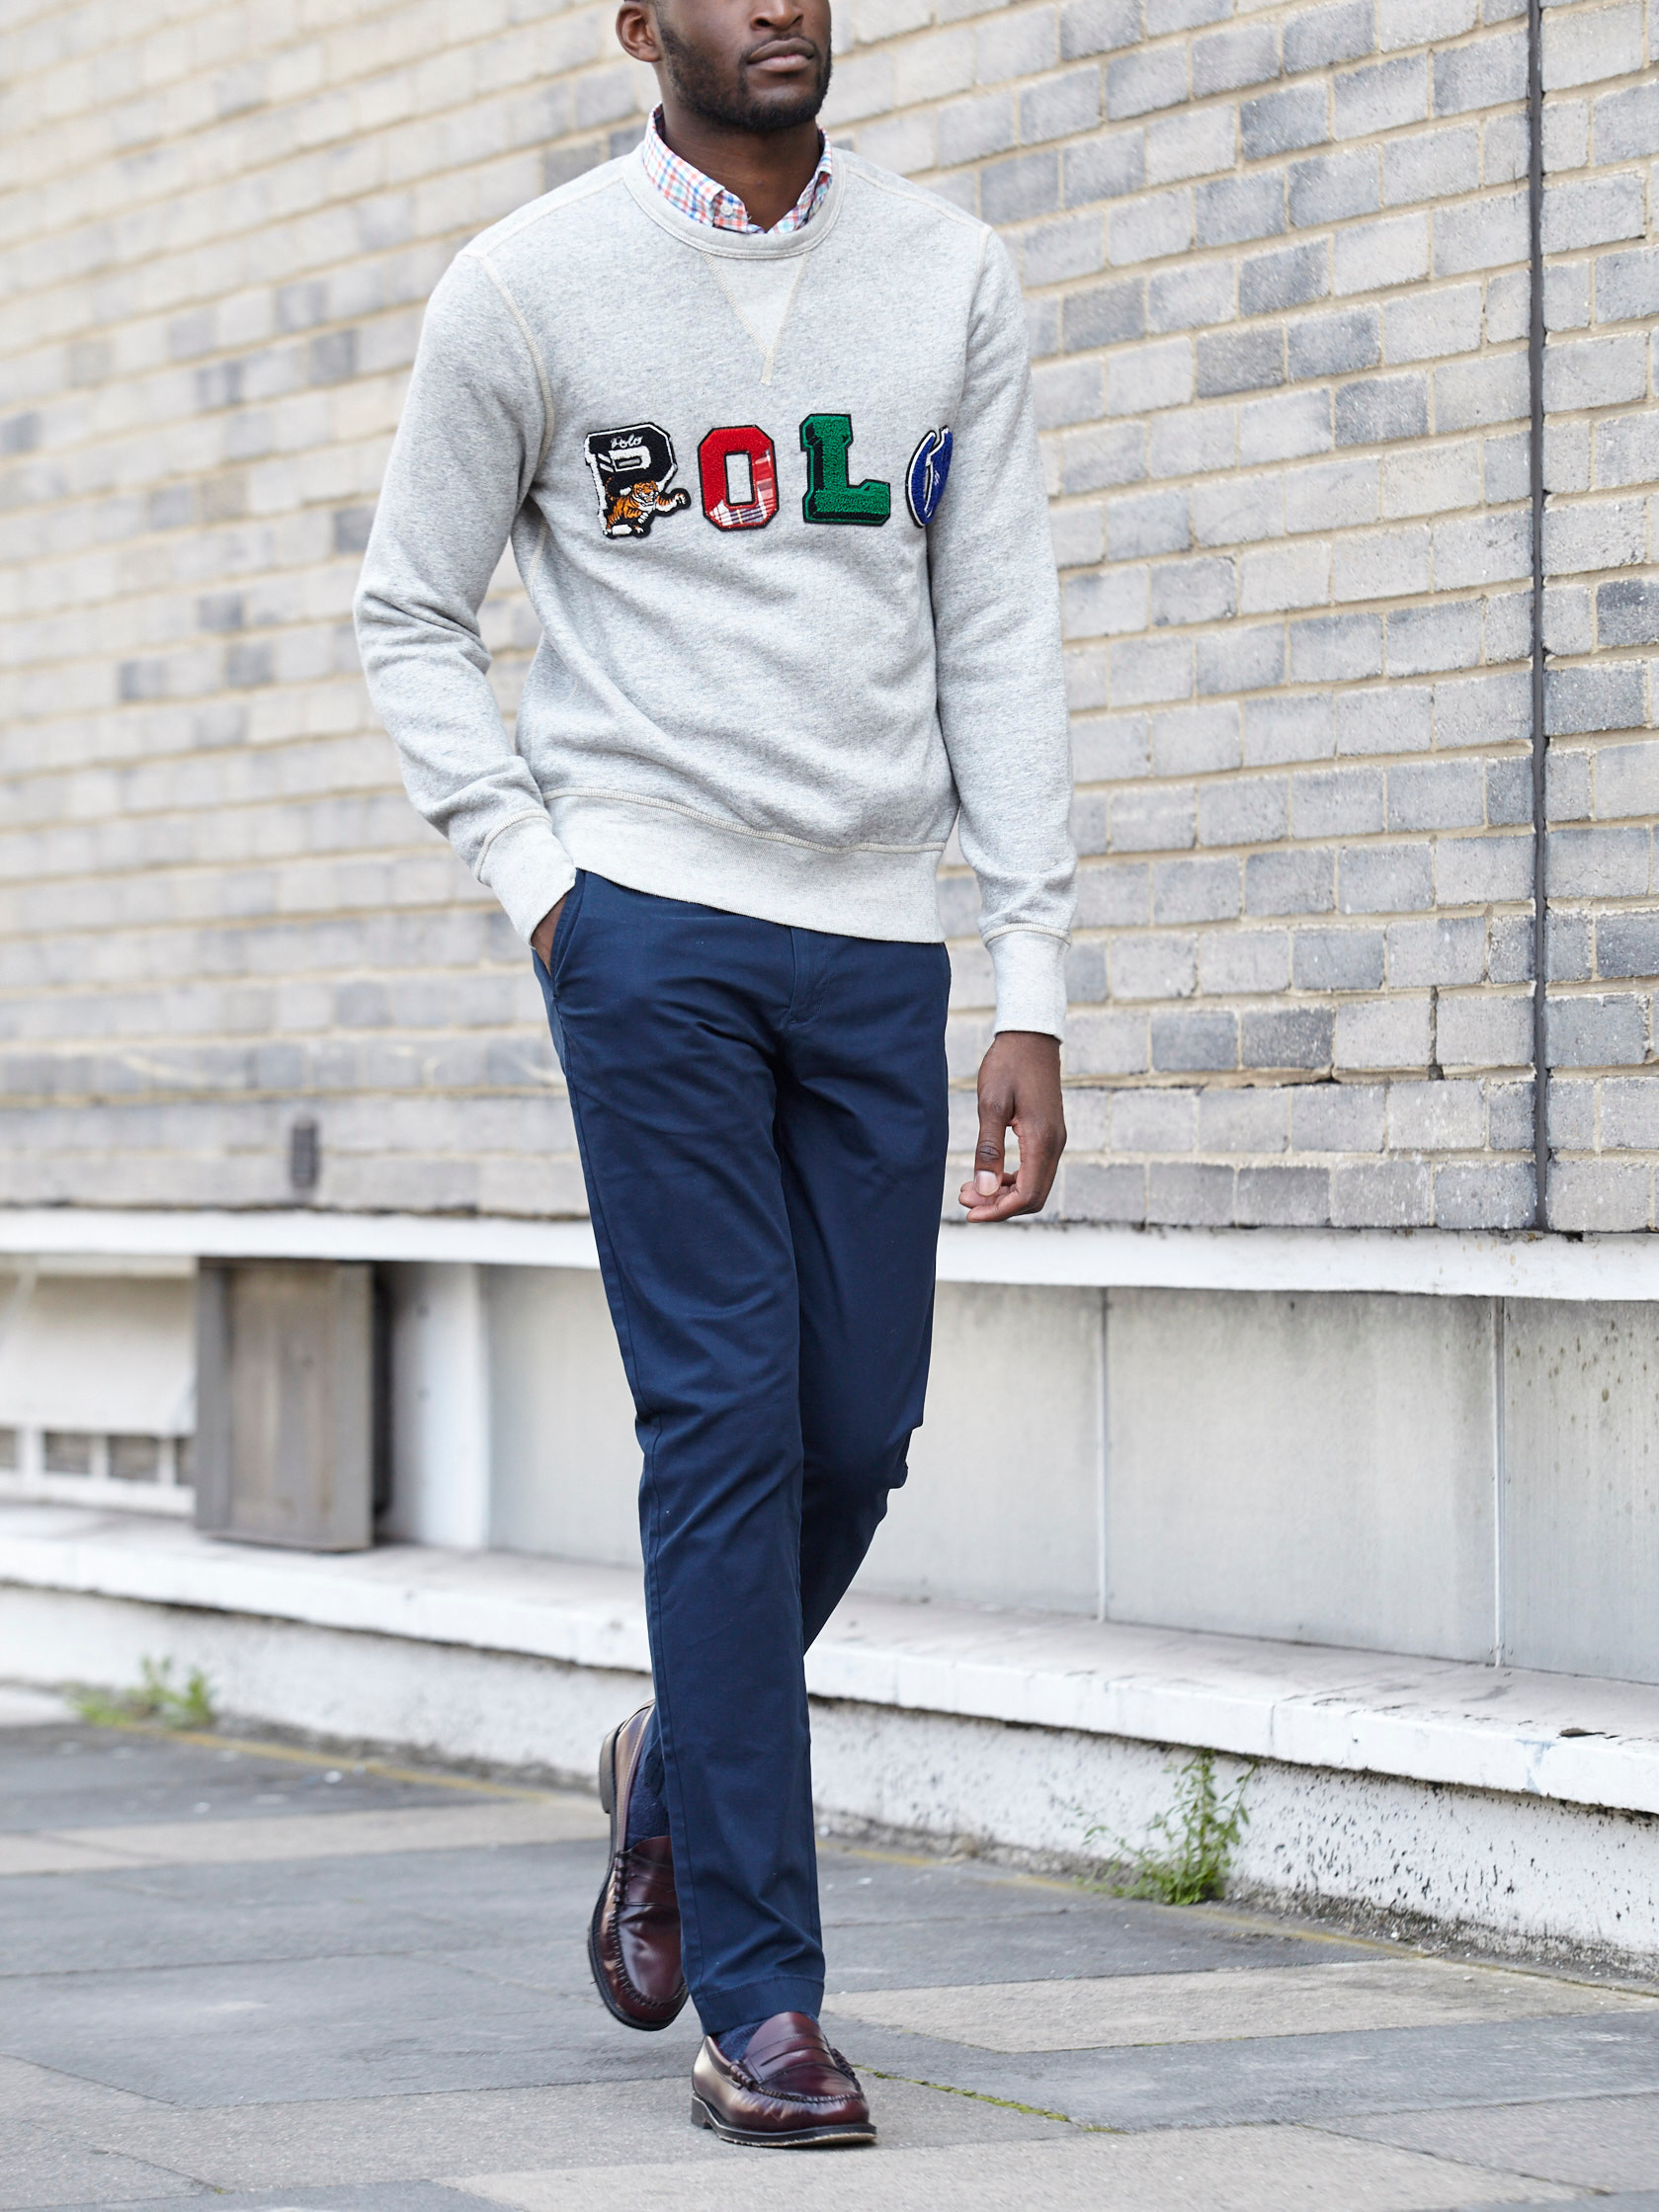 Men's outfit idea for 2021 with logo / printed sweatshirt, micro plaid casual shirt, navy chinos. Suitable for spring and fall.